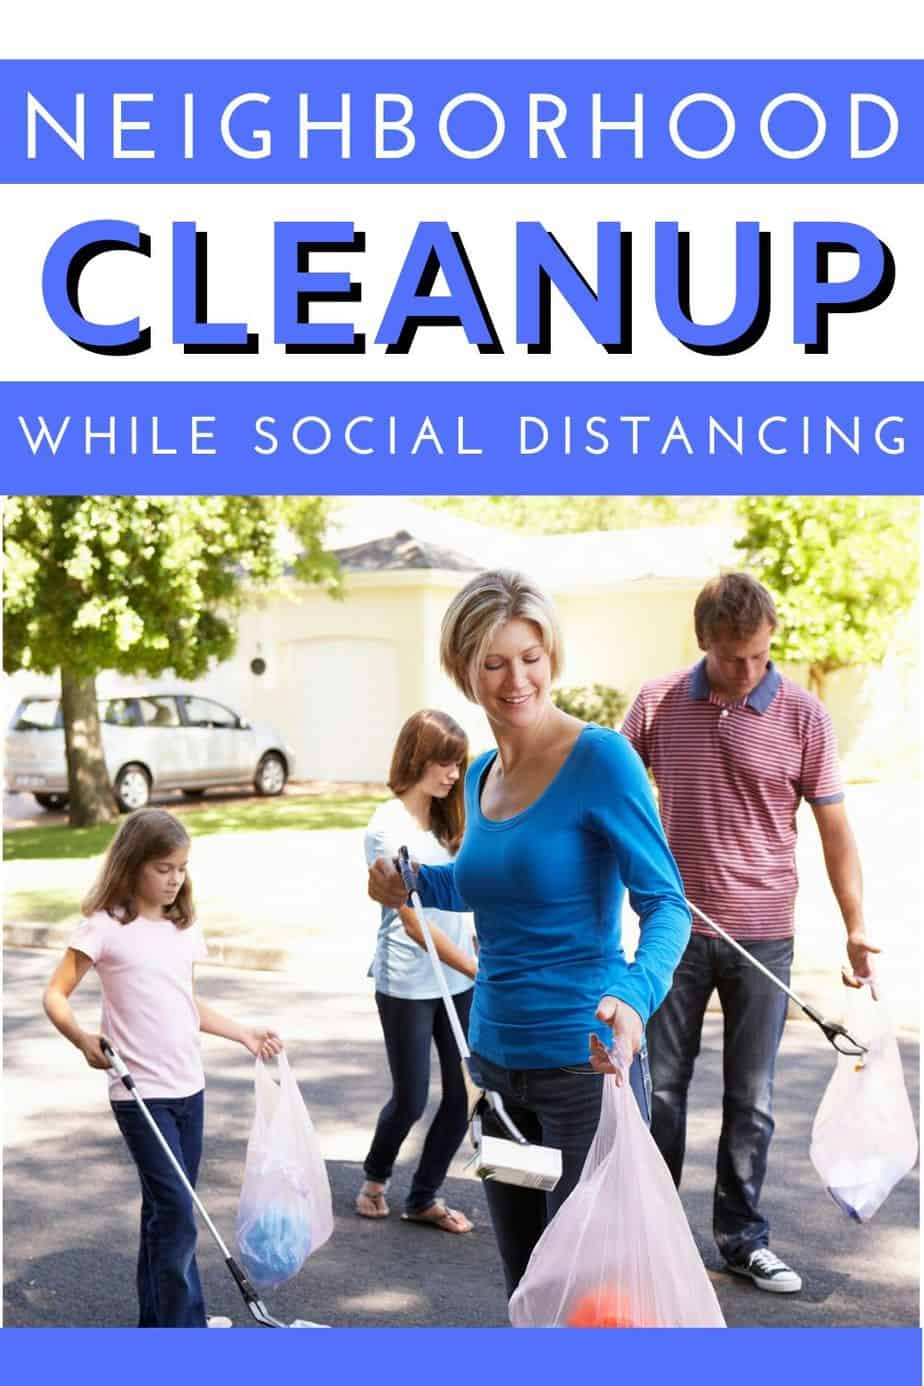 neighborhood cleanup while social distancing